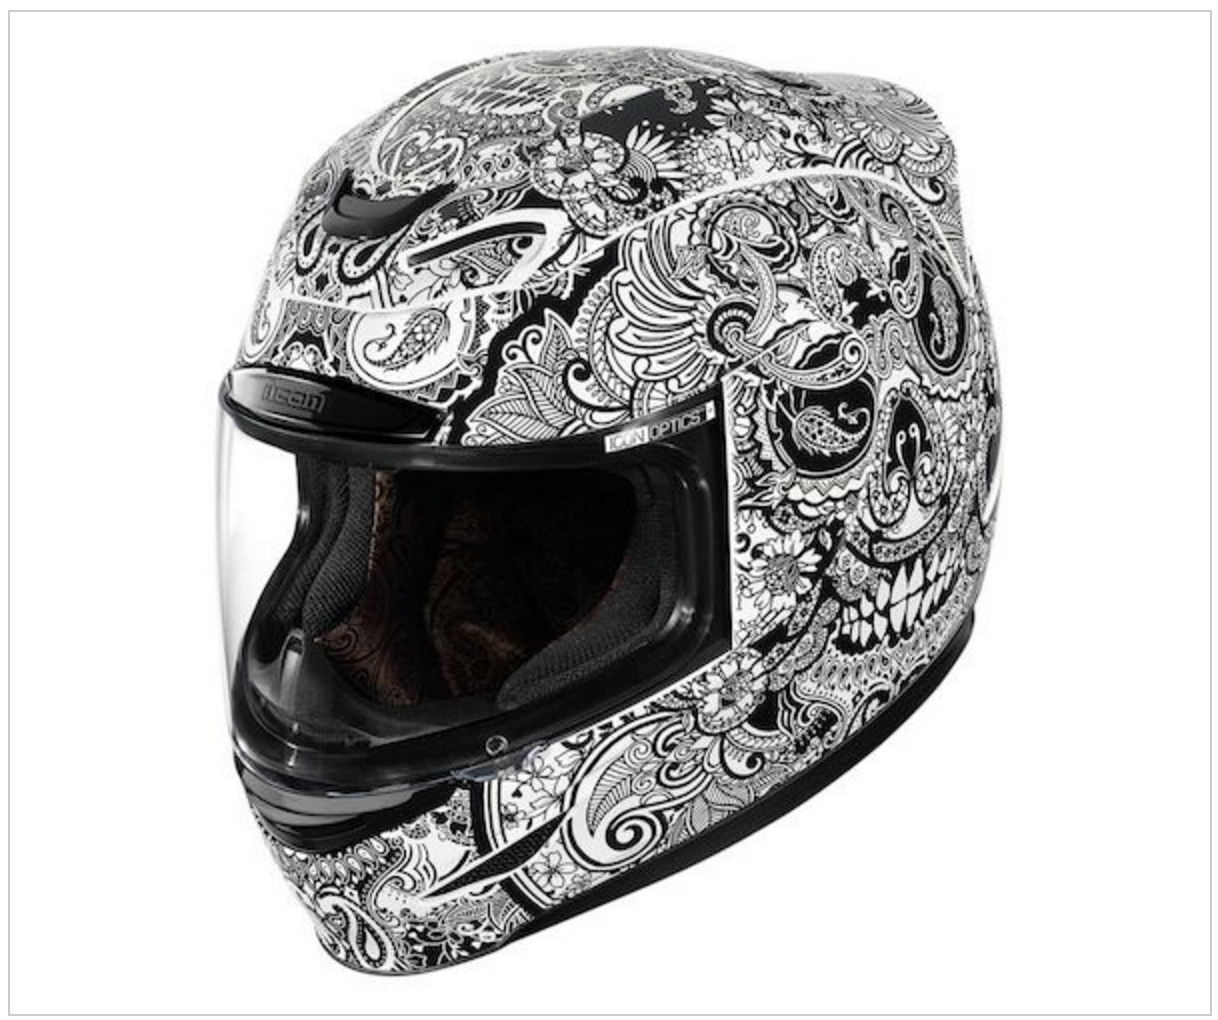 Icon Airmada Chantilly Helmet Review Stunning Graphics